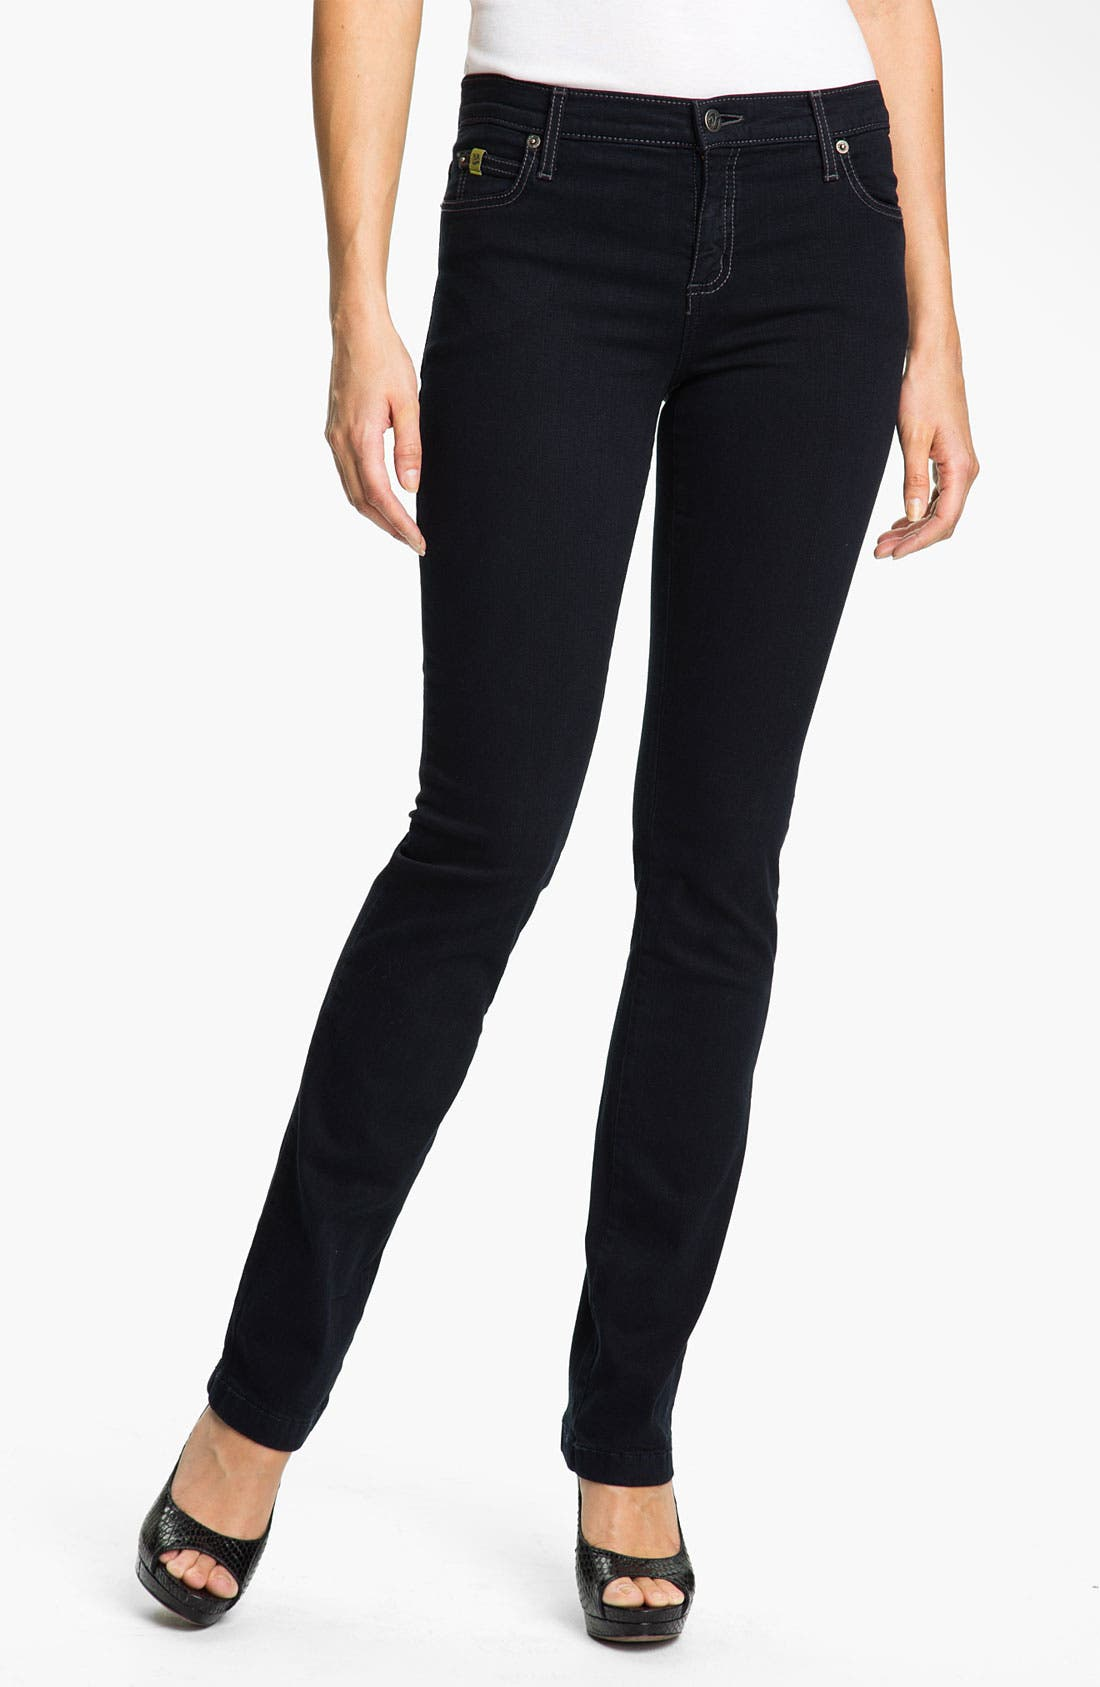 Main Image - Yoga Jeans by Second Denim Straight Leg Jeans